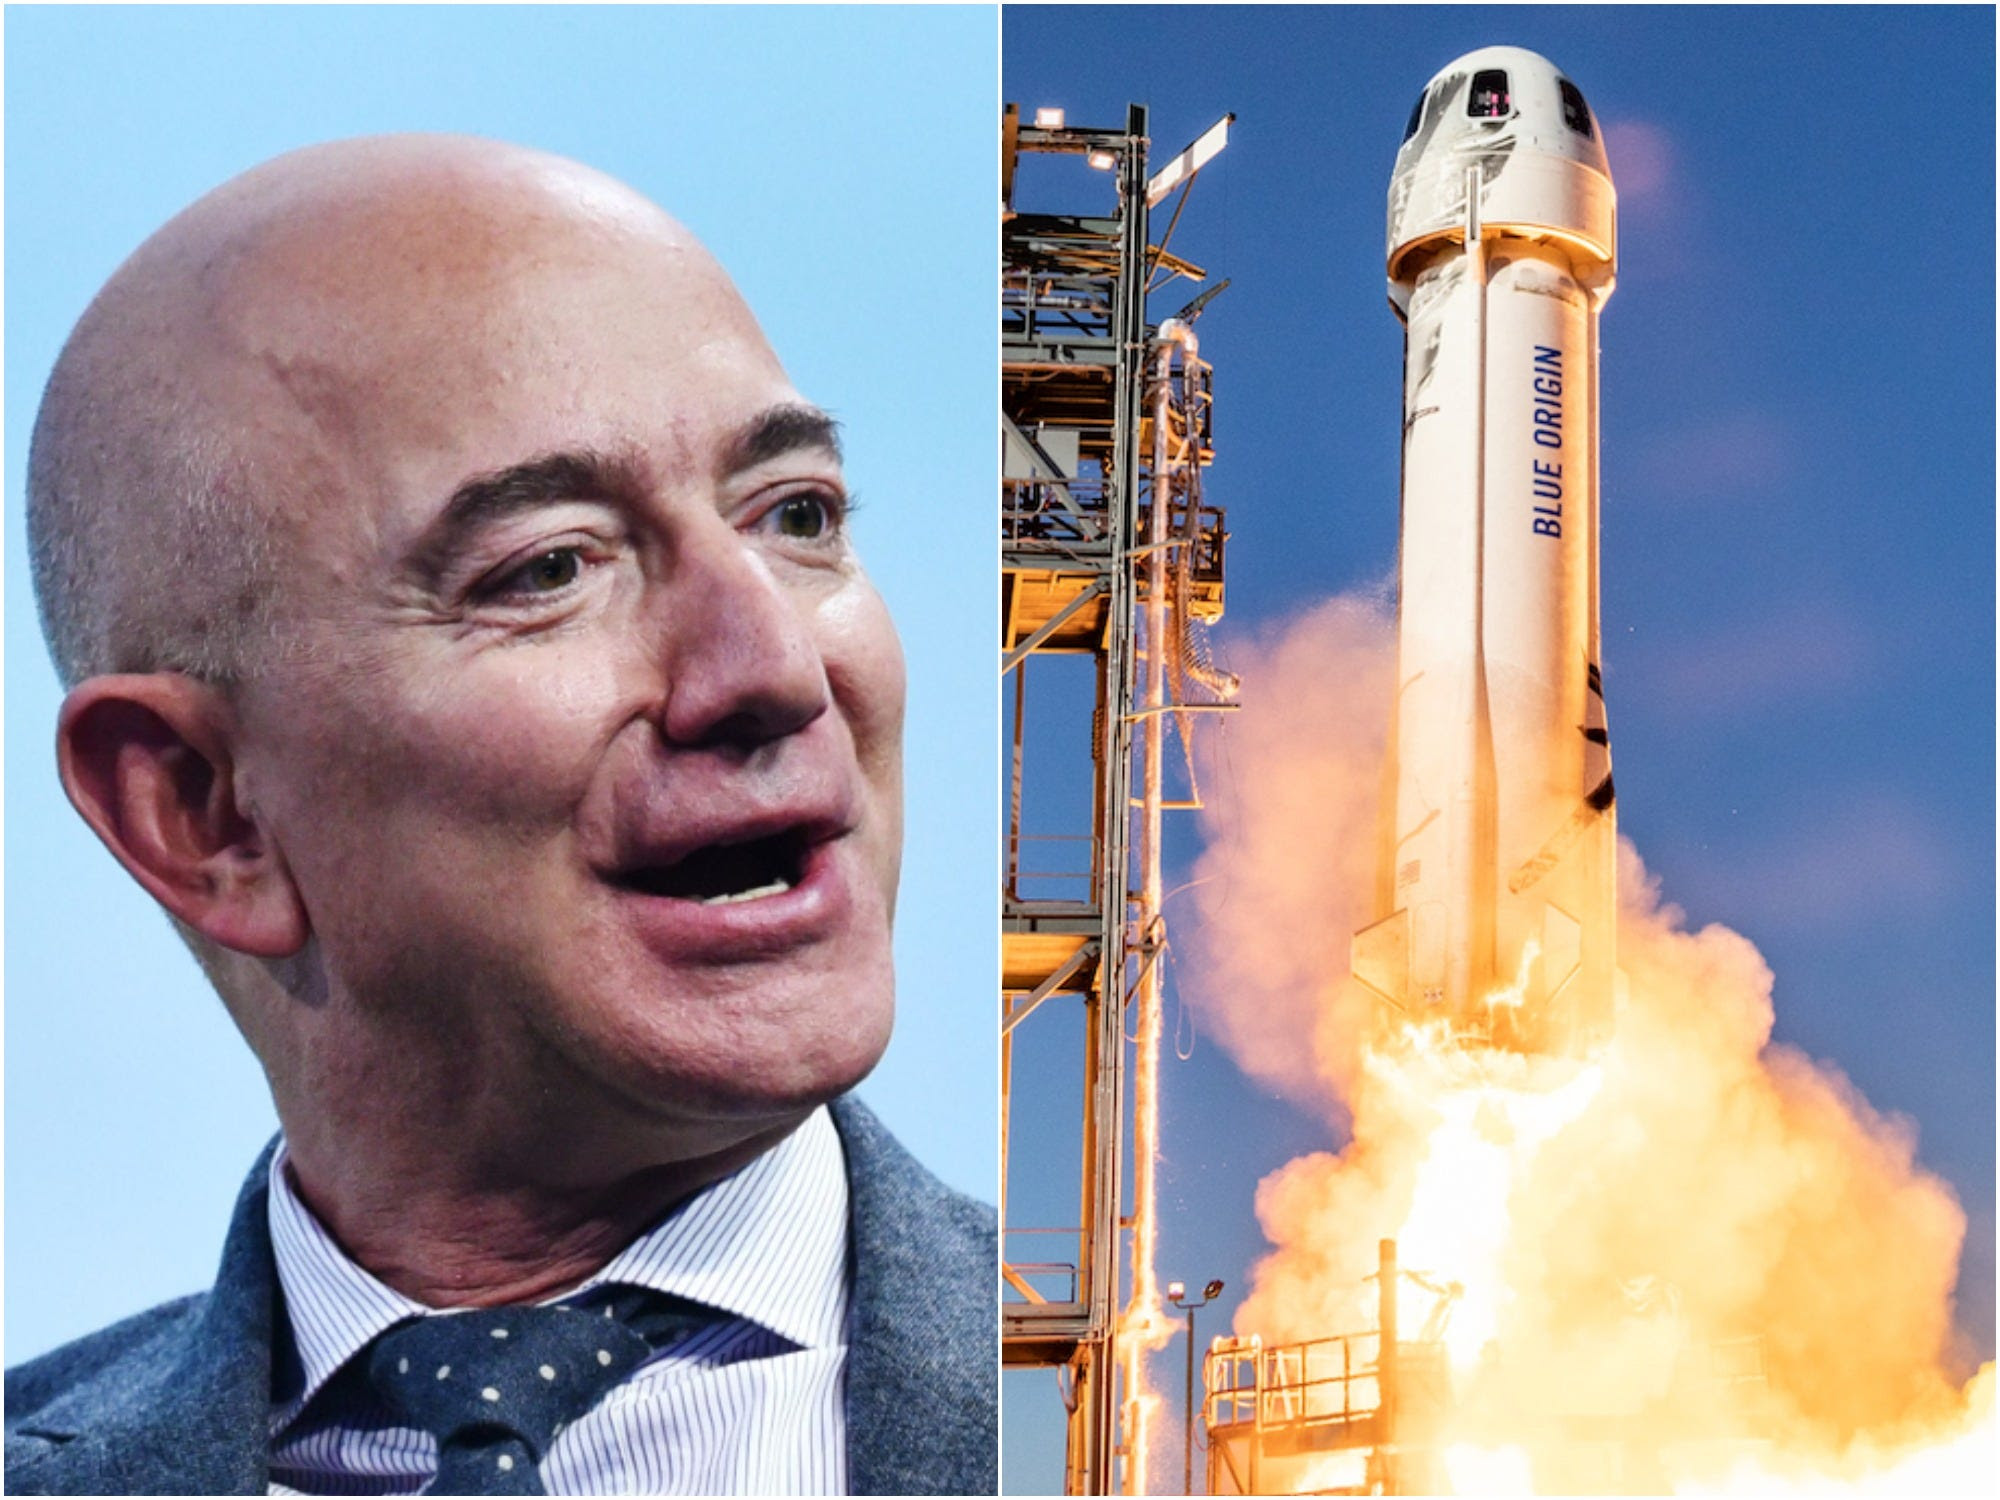 More than 56,000 people don't want Jeff Bezos to return from space next month